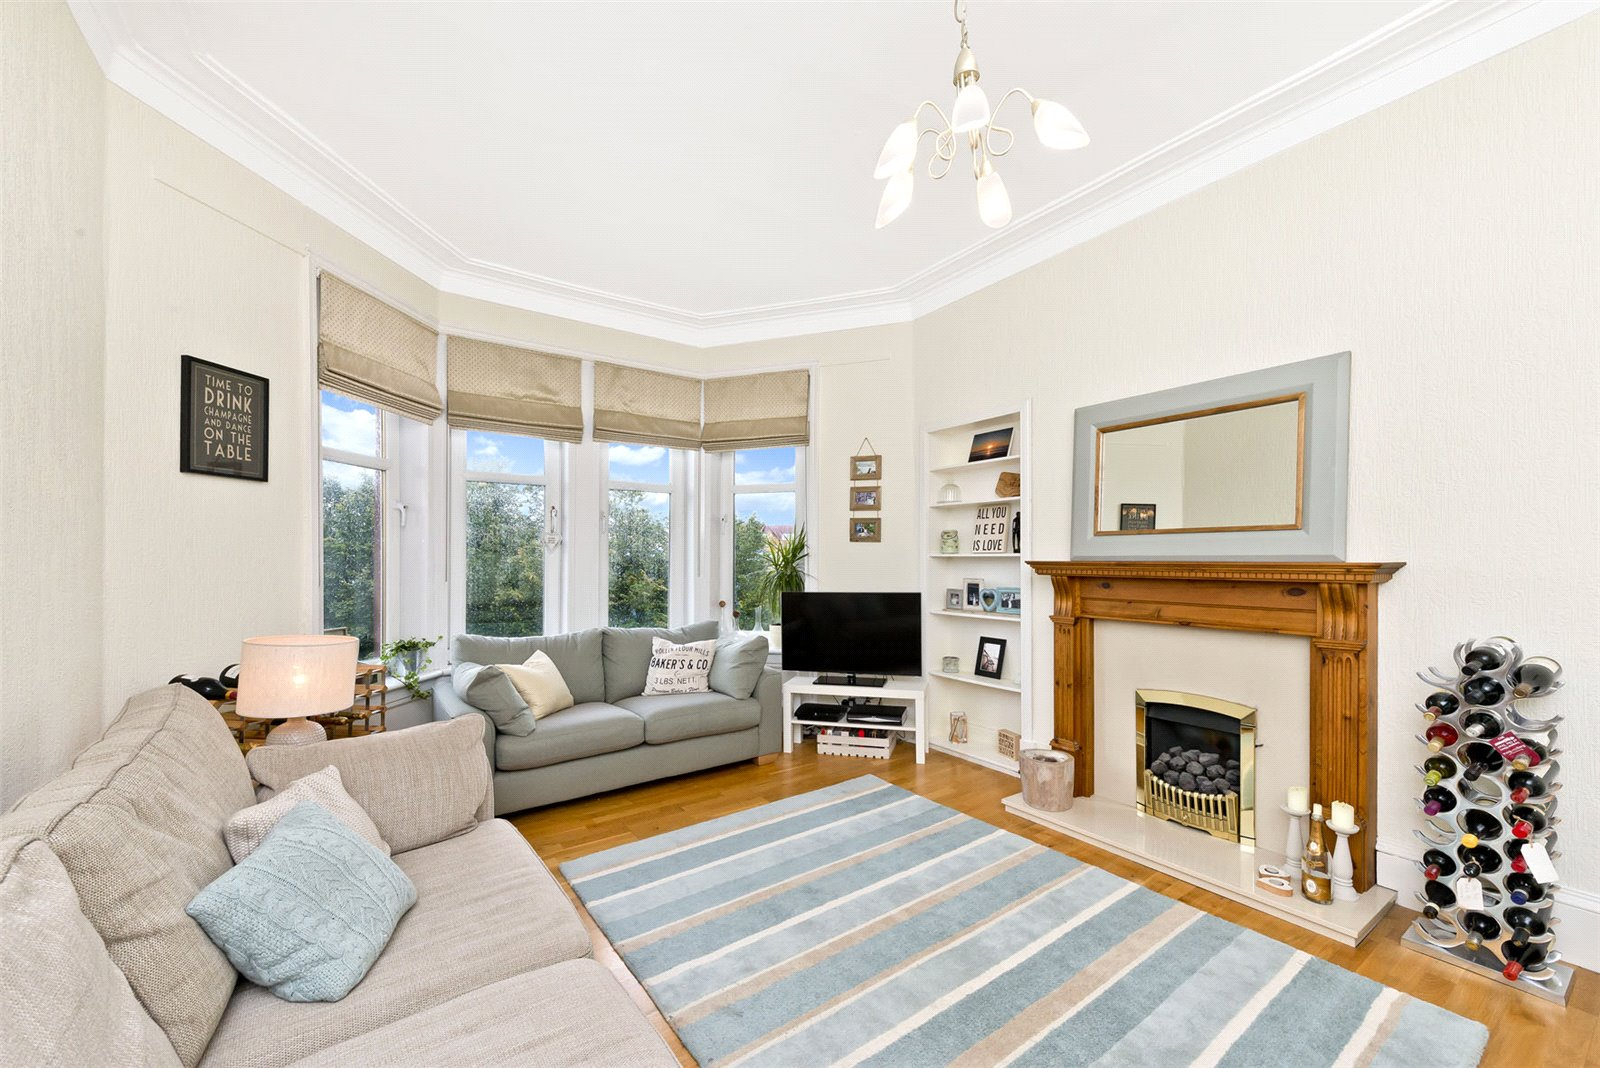 Glasgow Property of the Week: 26 Woodcroft Avenue